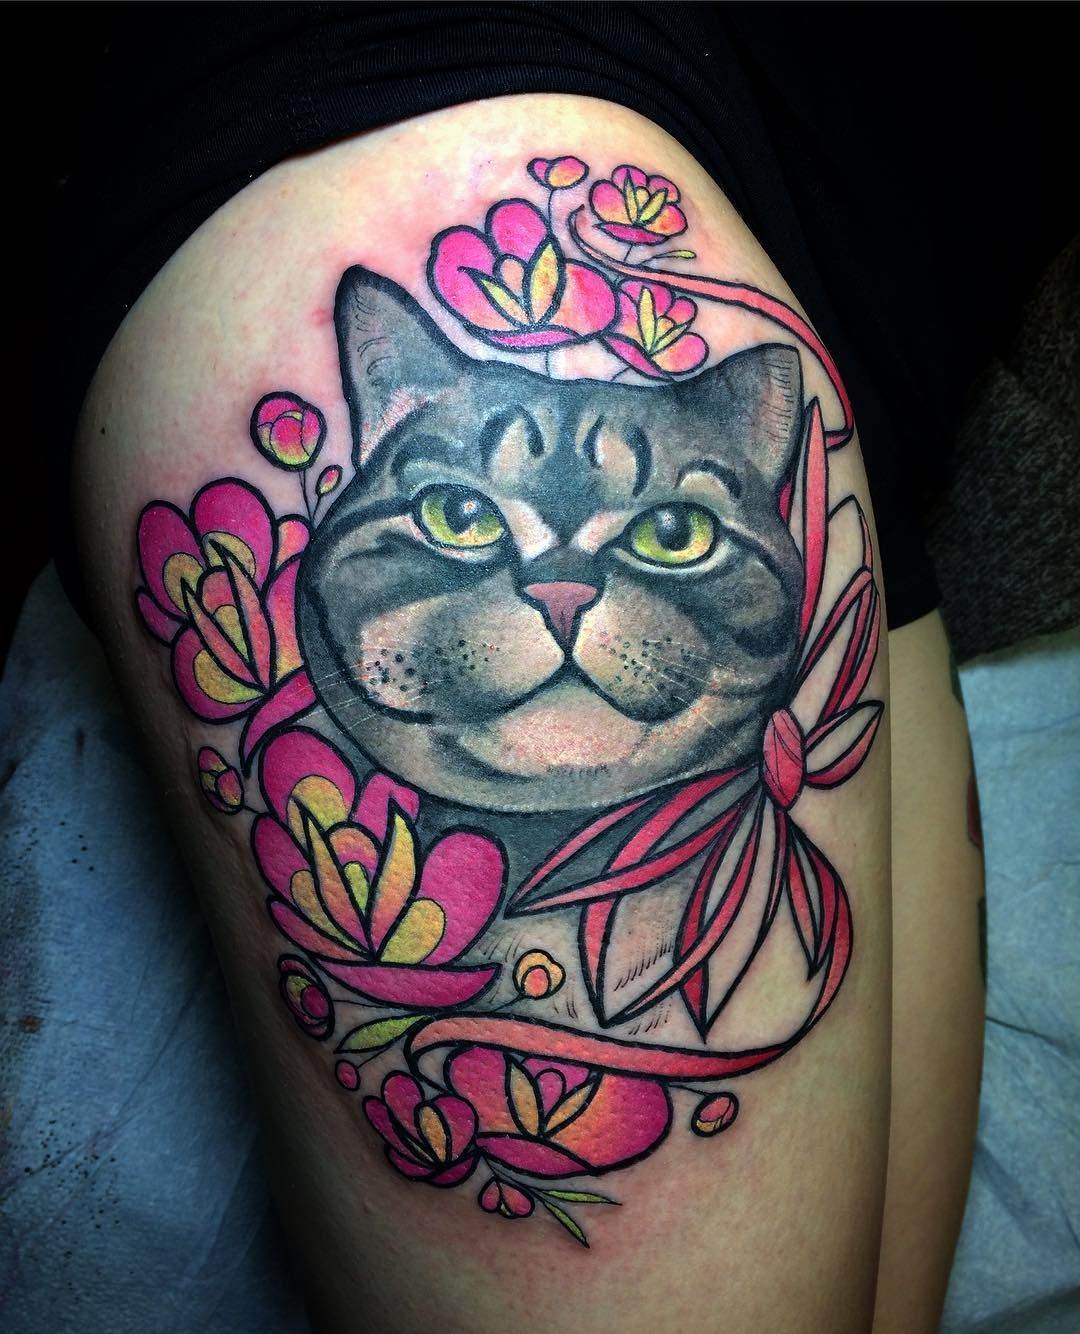 When Crazy Cat Lady Tattoos Another Crazy Cat Lady This Has To Be The Biggest Cat Face I Have Tattooed To Date Full Thigh So Pur Crazy Cats Cat Tattoo Crazy